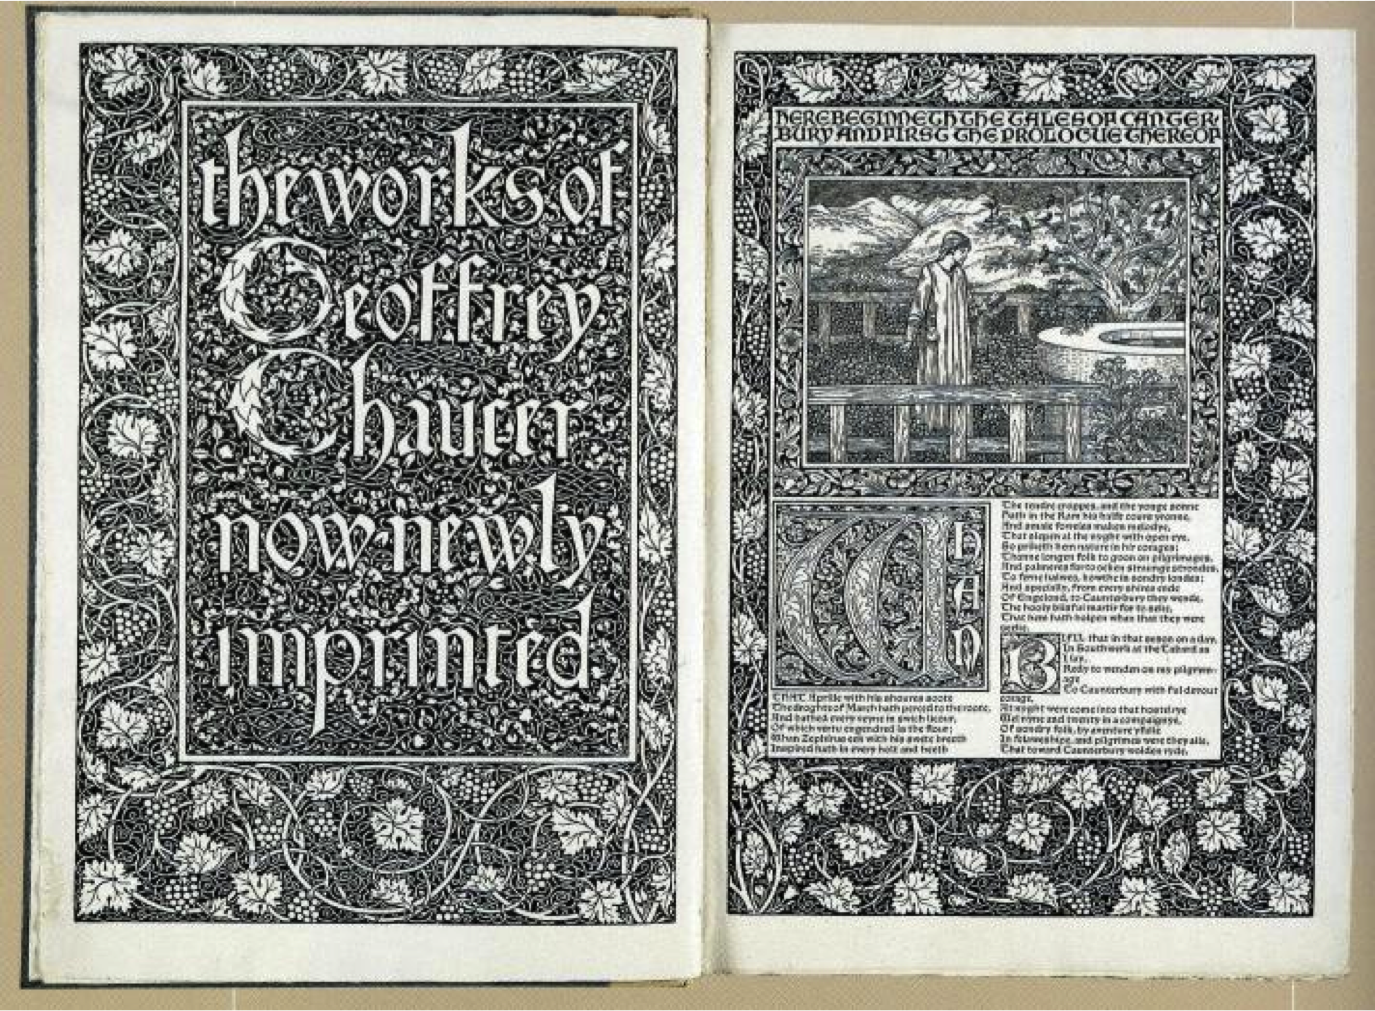 The Works Of Geoffrey Chaucer 1896 William Morris Arts And Crafts Movement William Morris Art